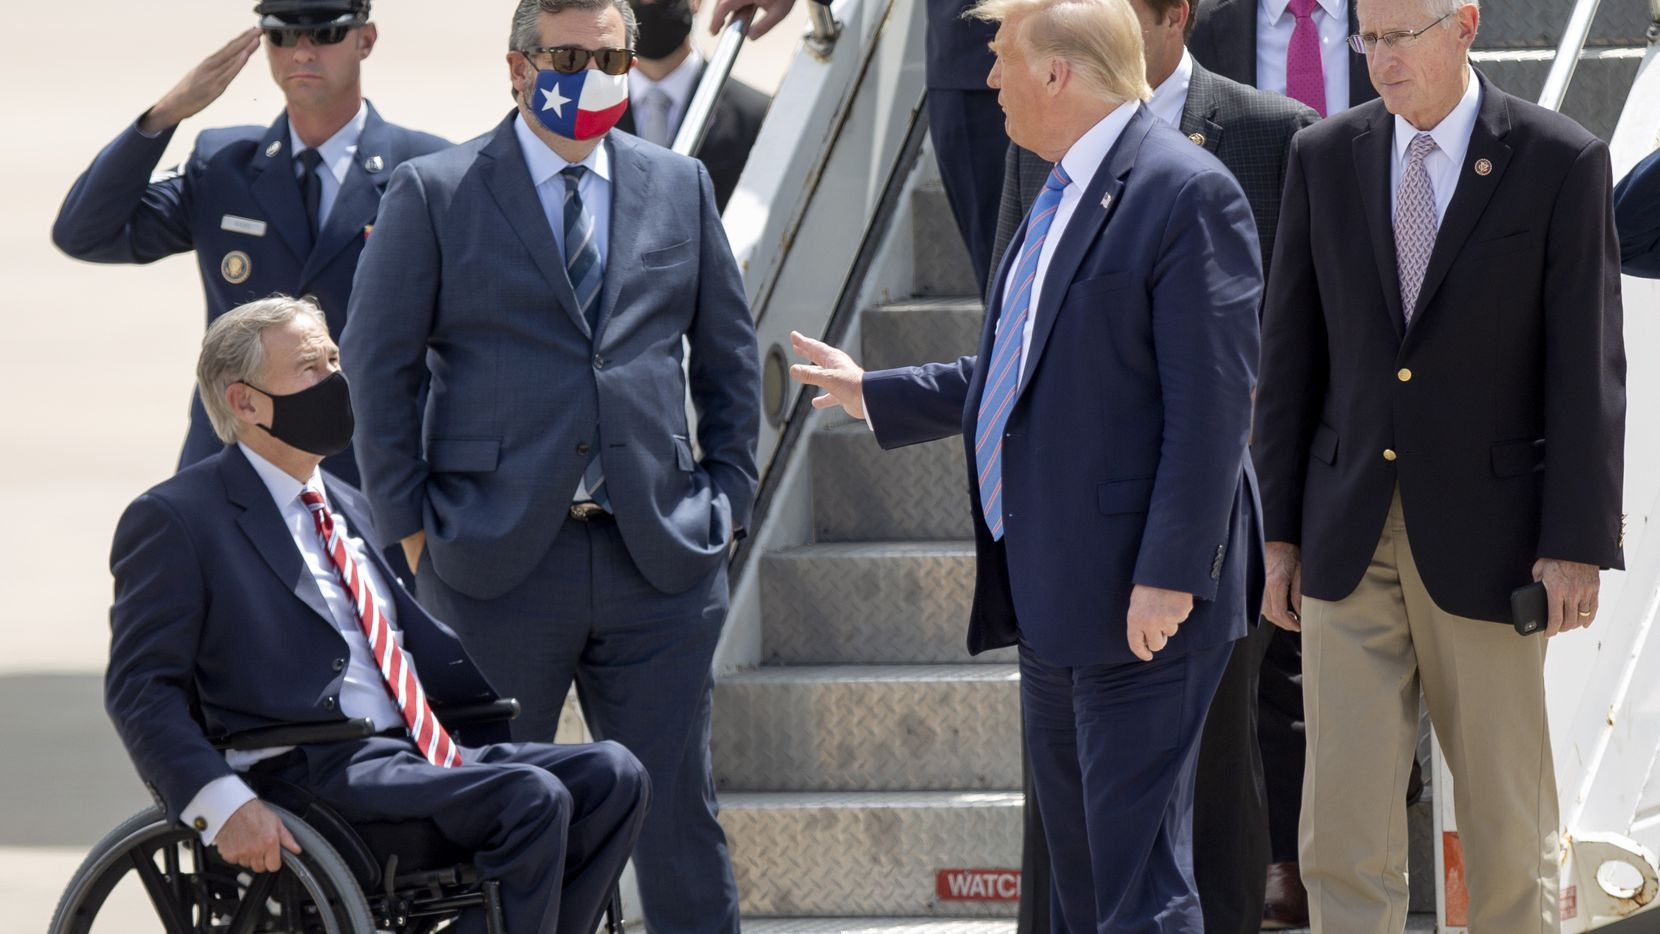 President Donald Trump chats with Texas Gov. Greg Abbott and Sen. Ted Cruz, with Rep. Mike Conaway, right, after arriving in Midland on Wednesday, July 29, 2020.